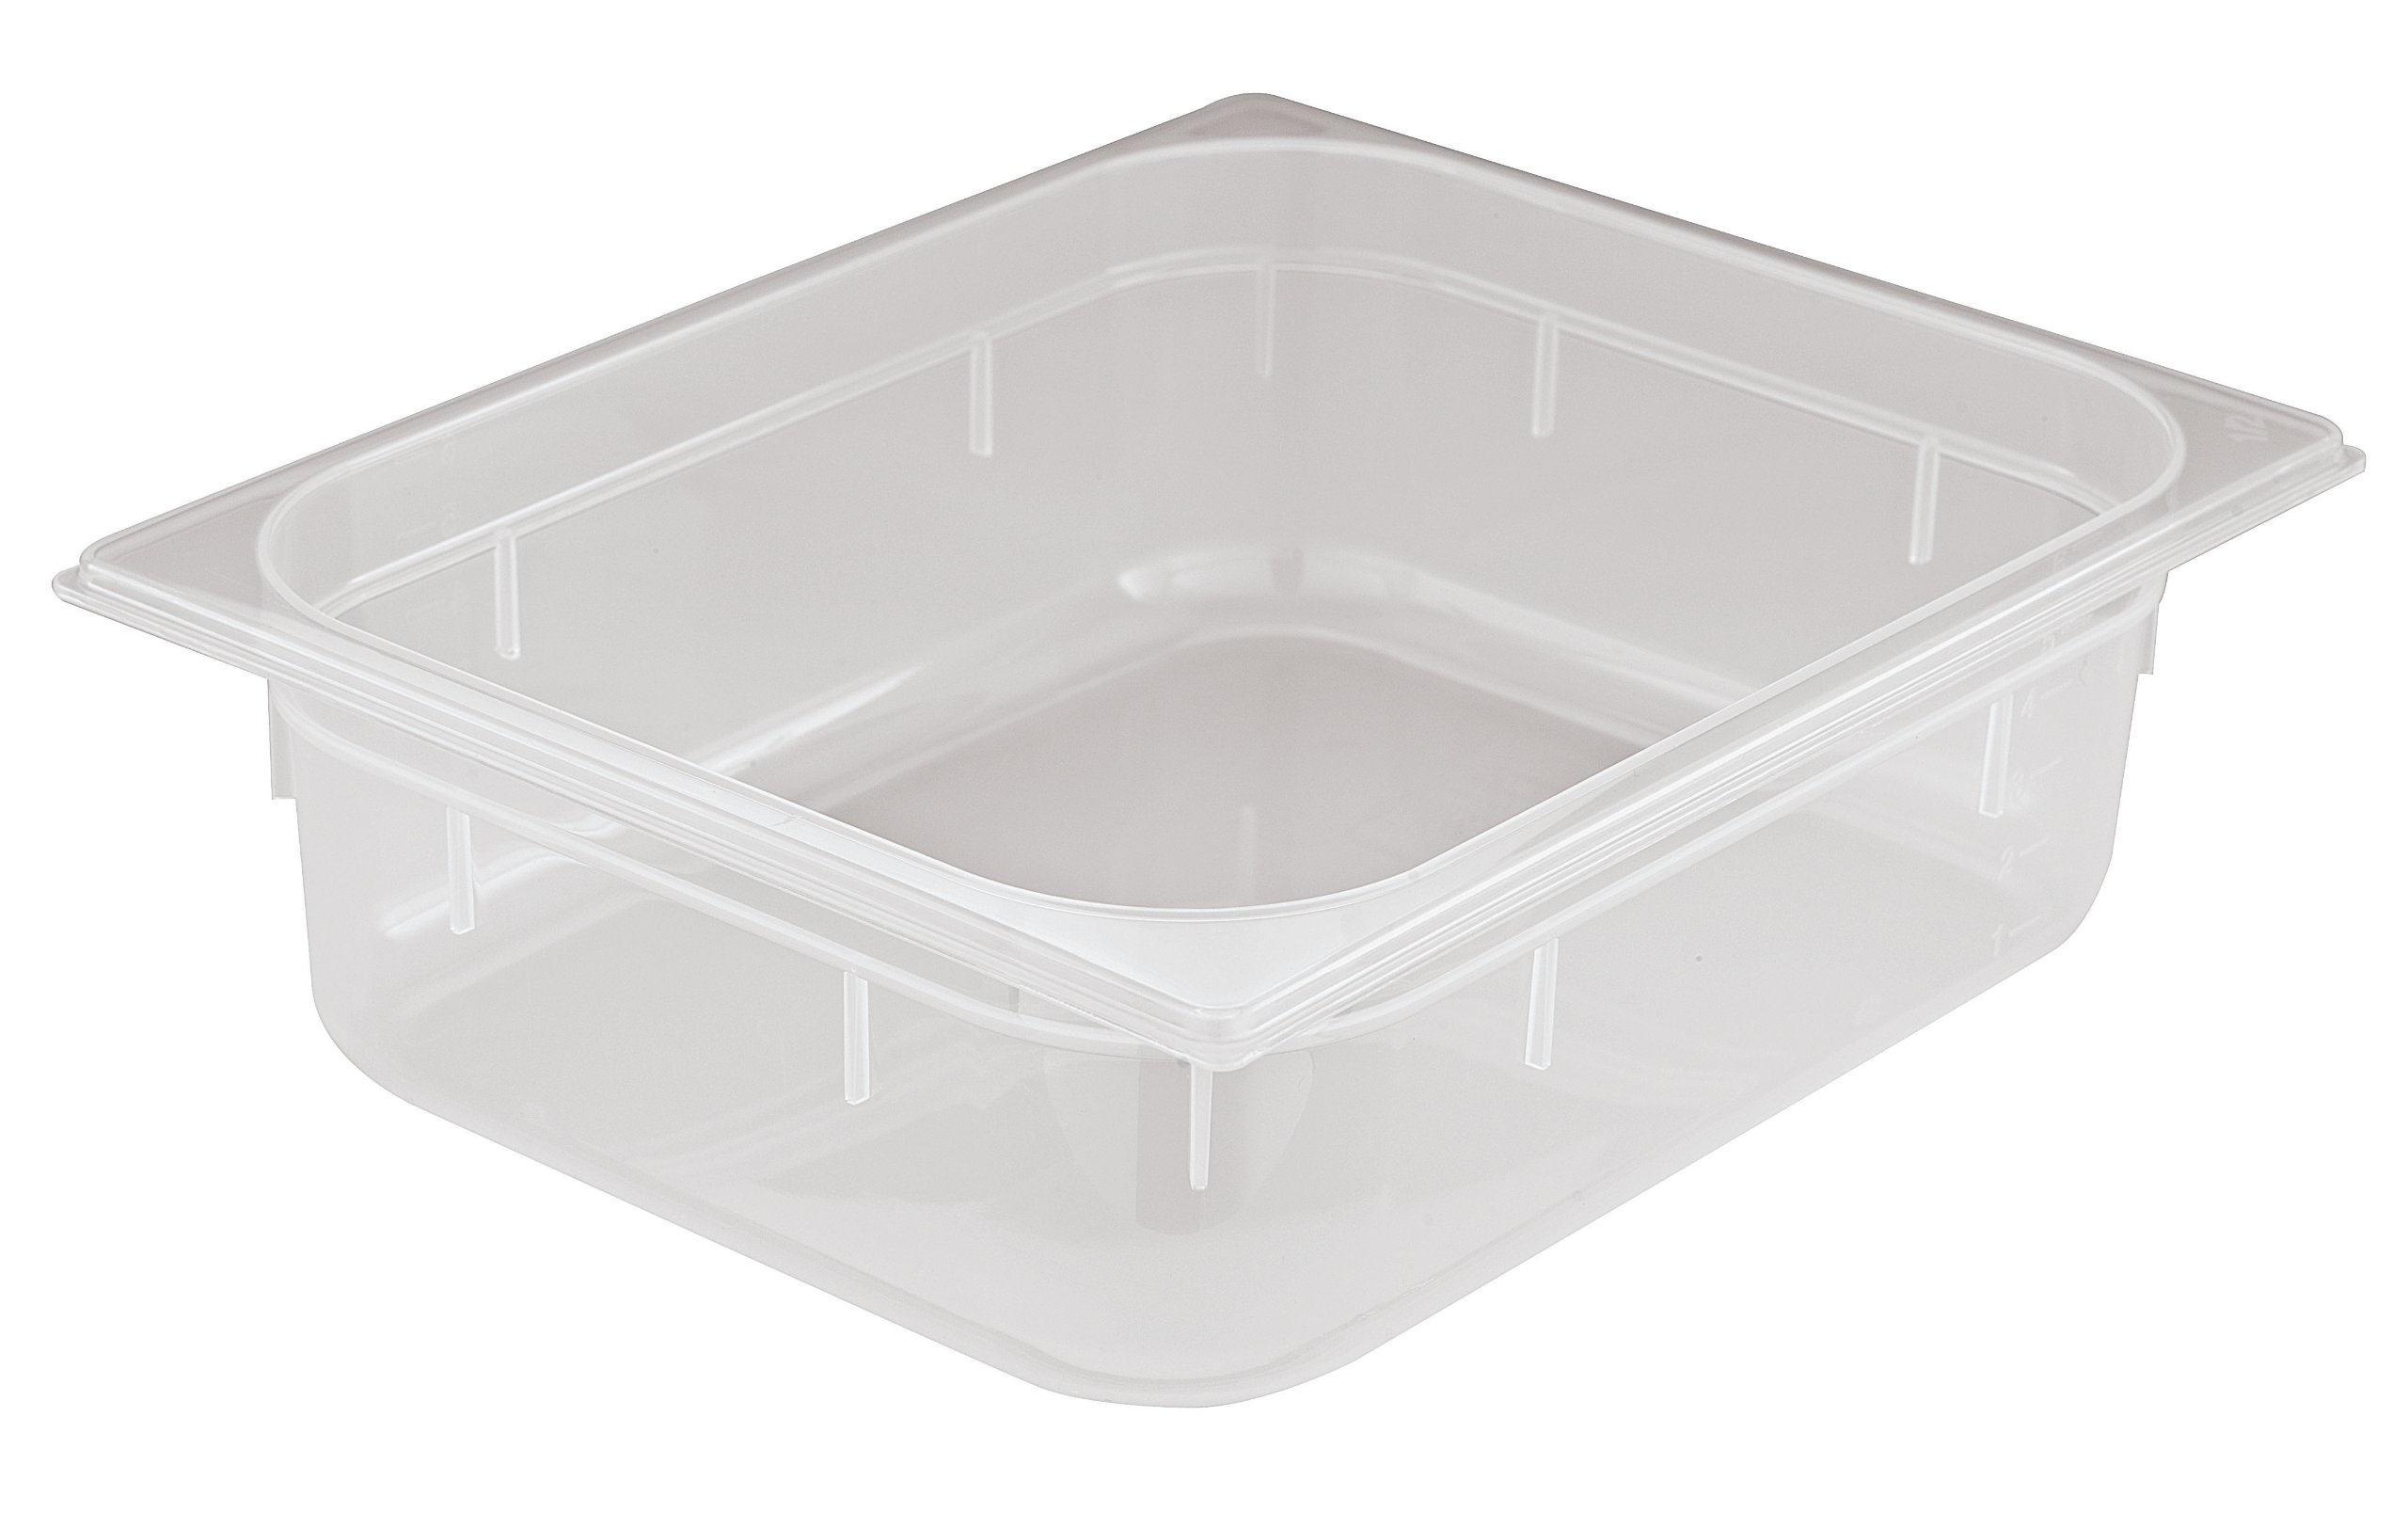 Paderno World Cuisine 12 3/4 inches by 7 1/8 inches Polypropylene Hotel Food Pan - 1/3 (depth: 6 inches)